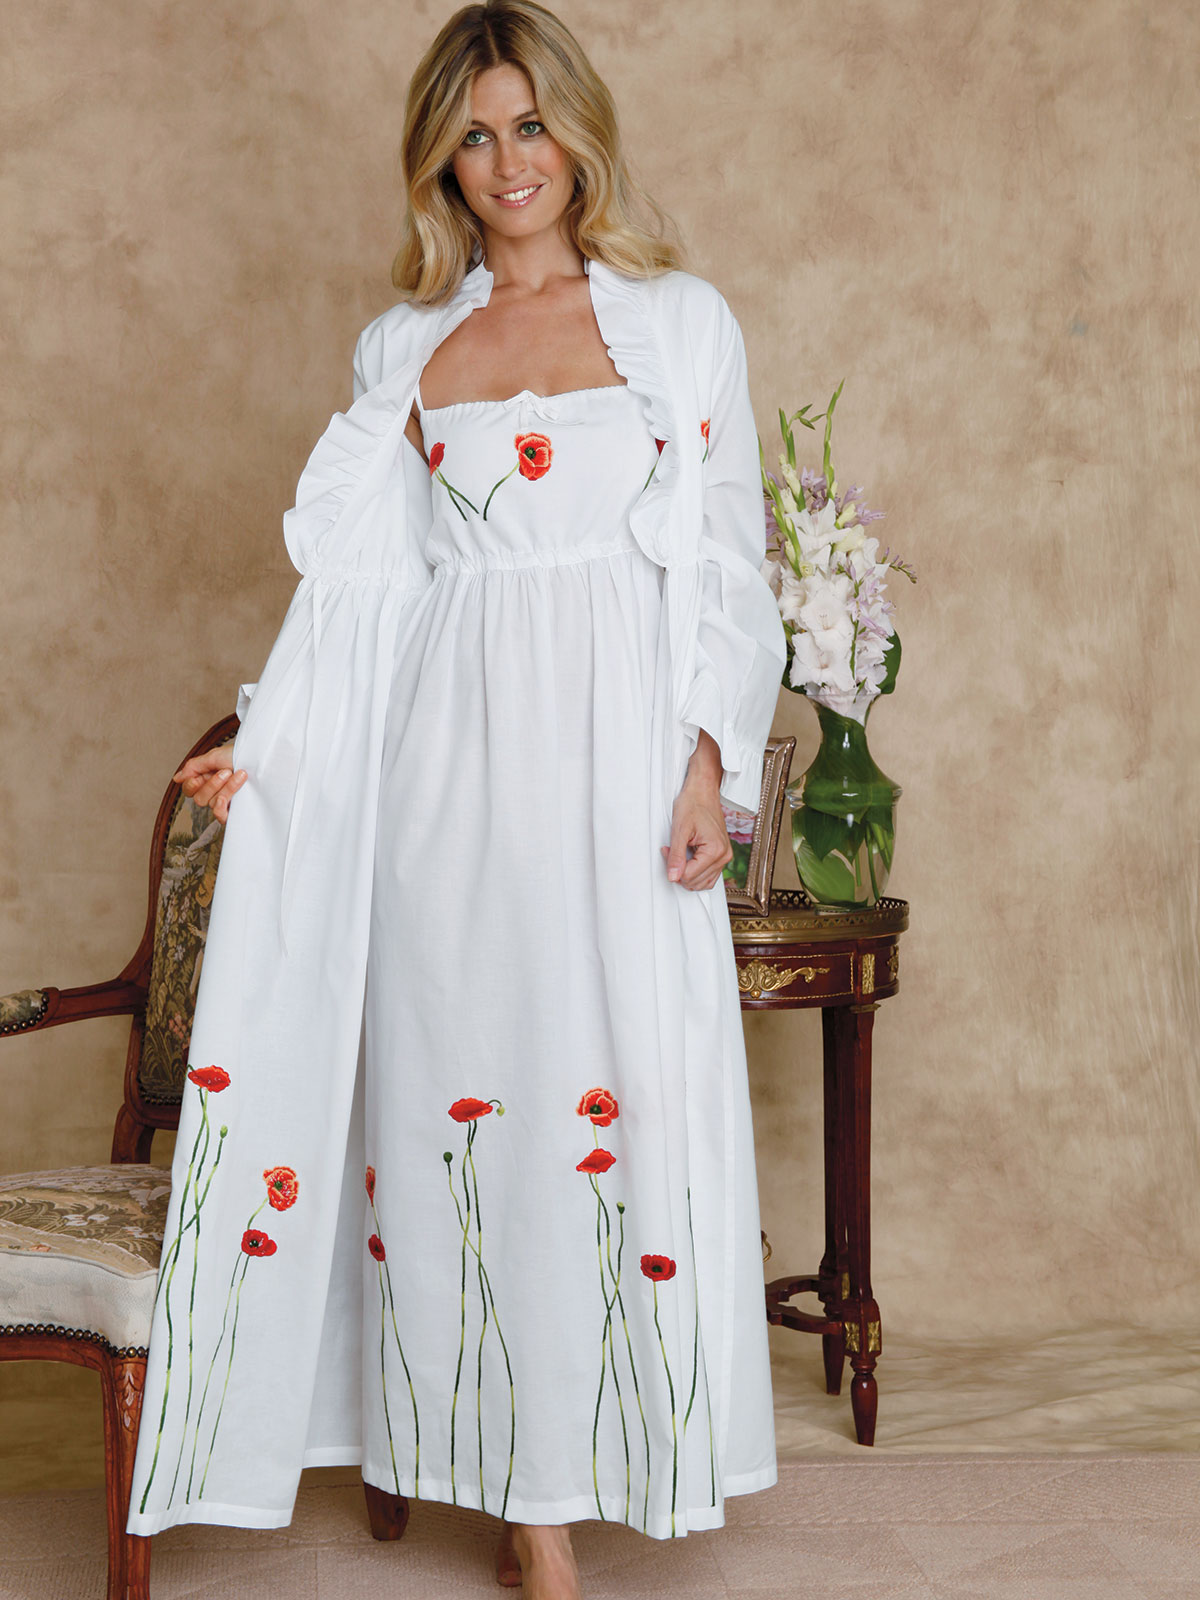 Poppies_Gwn_Robe_0422.jpg